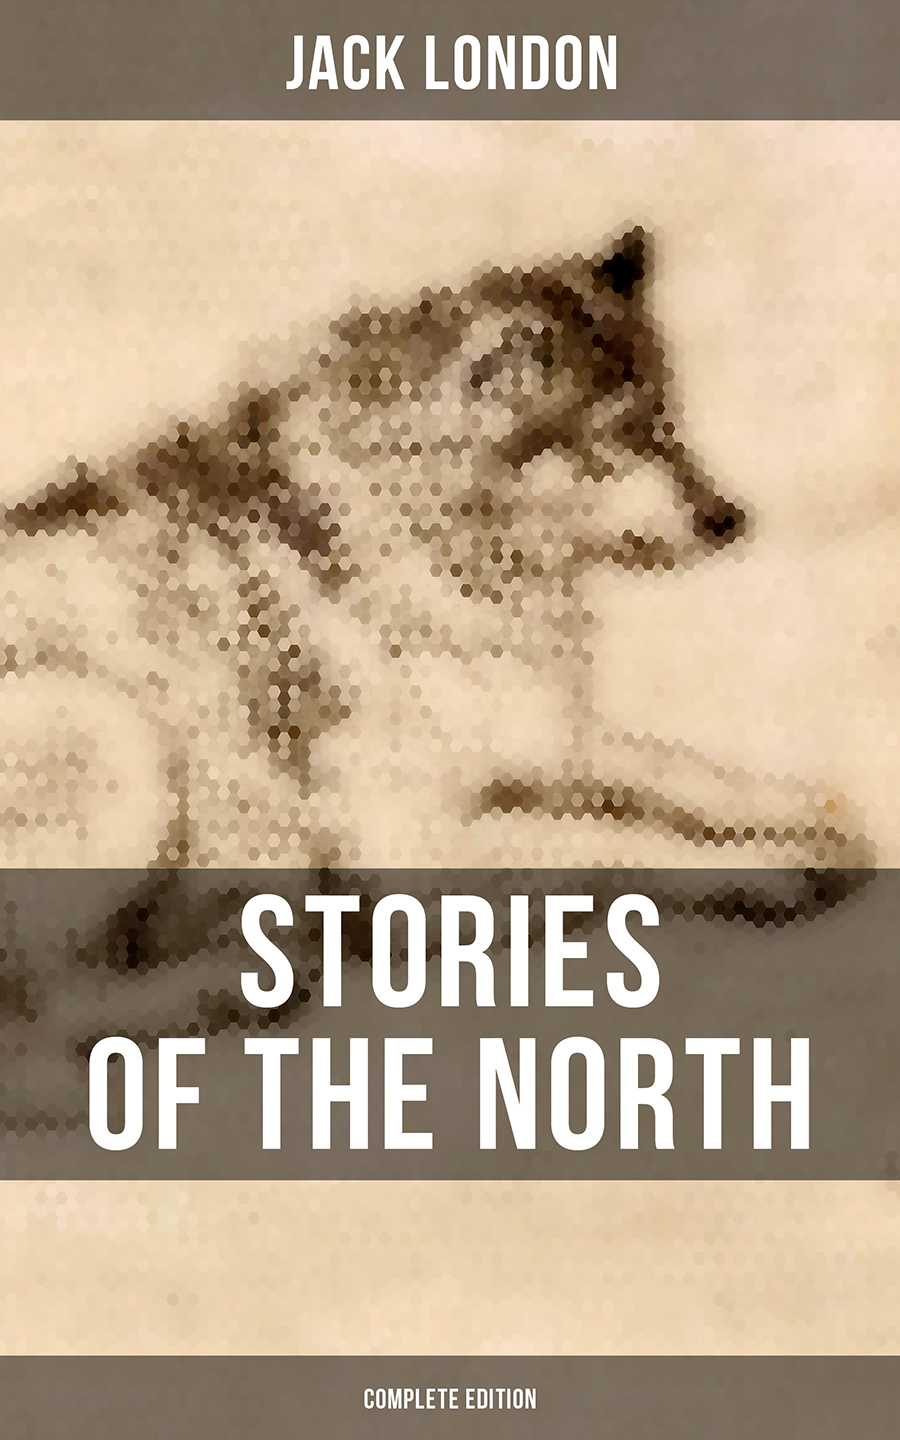 Jack London Stories of the North by Jack London (Complete Edition) mackenzie moulton london police divers stories 1983 to 1996